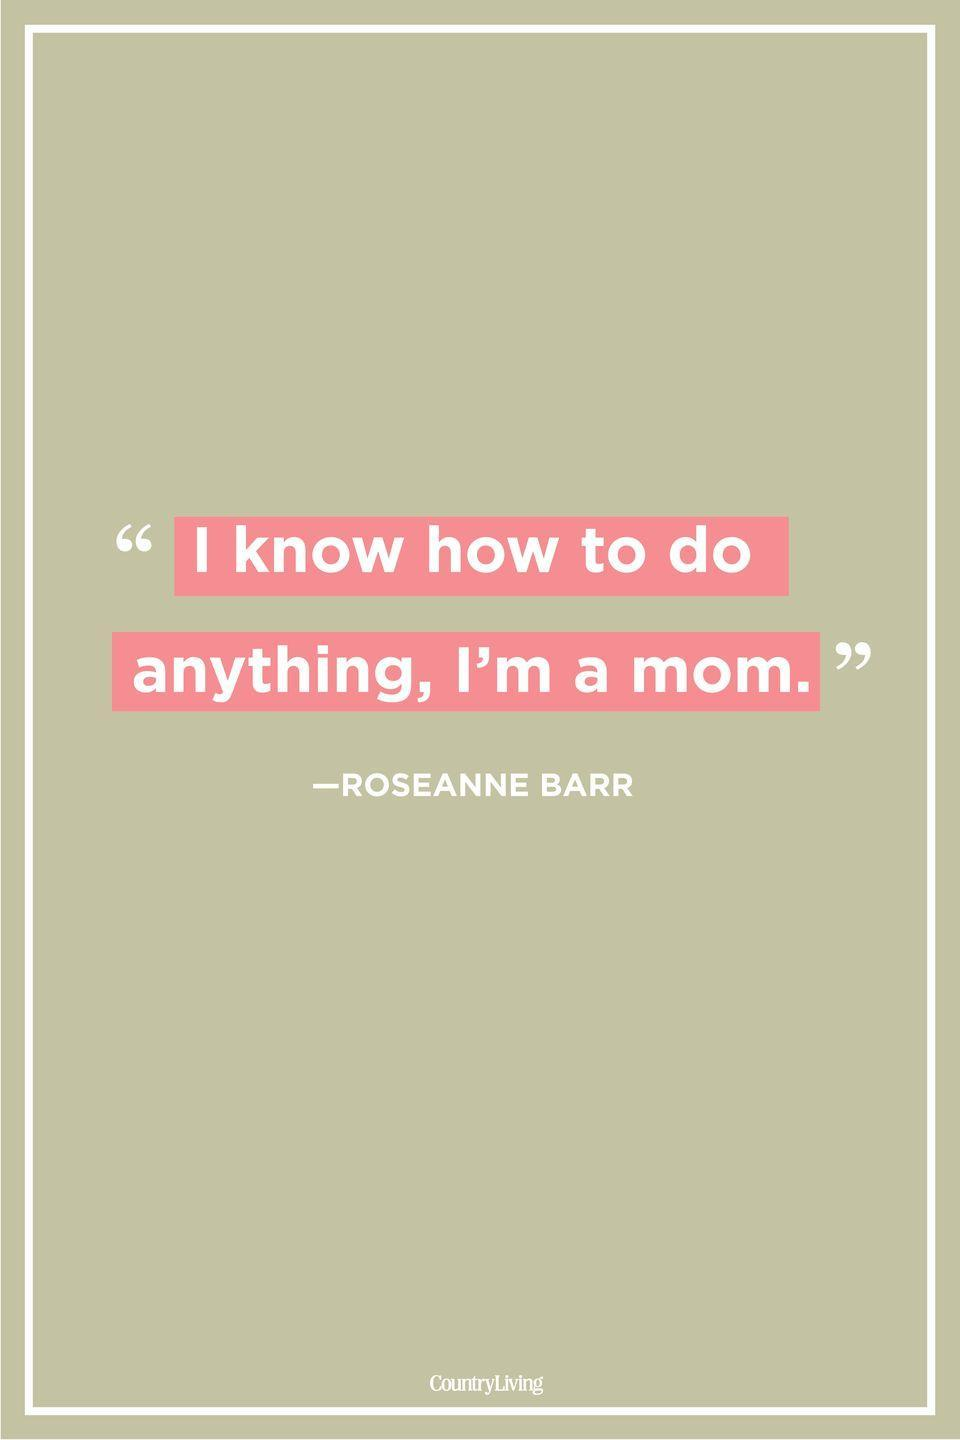 "<p>""I know how to do anything, I'm a mom.""</p>"